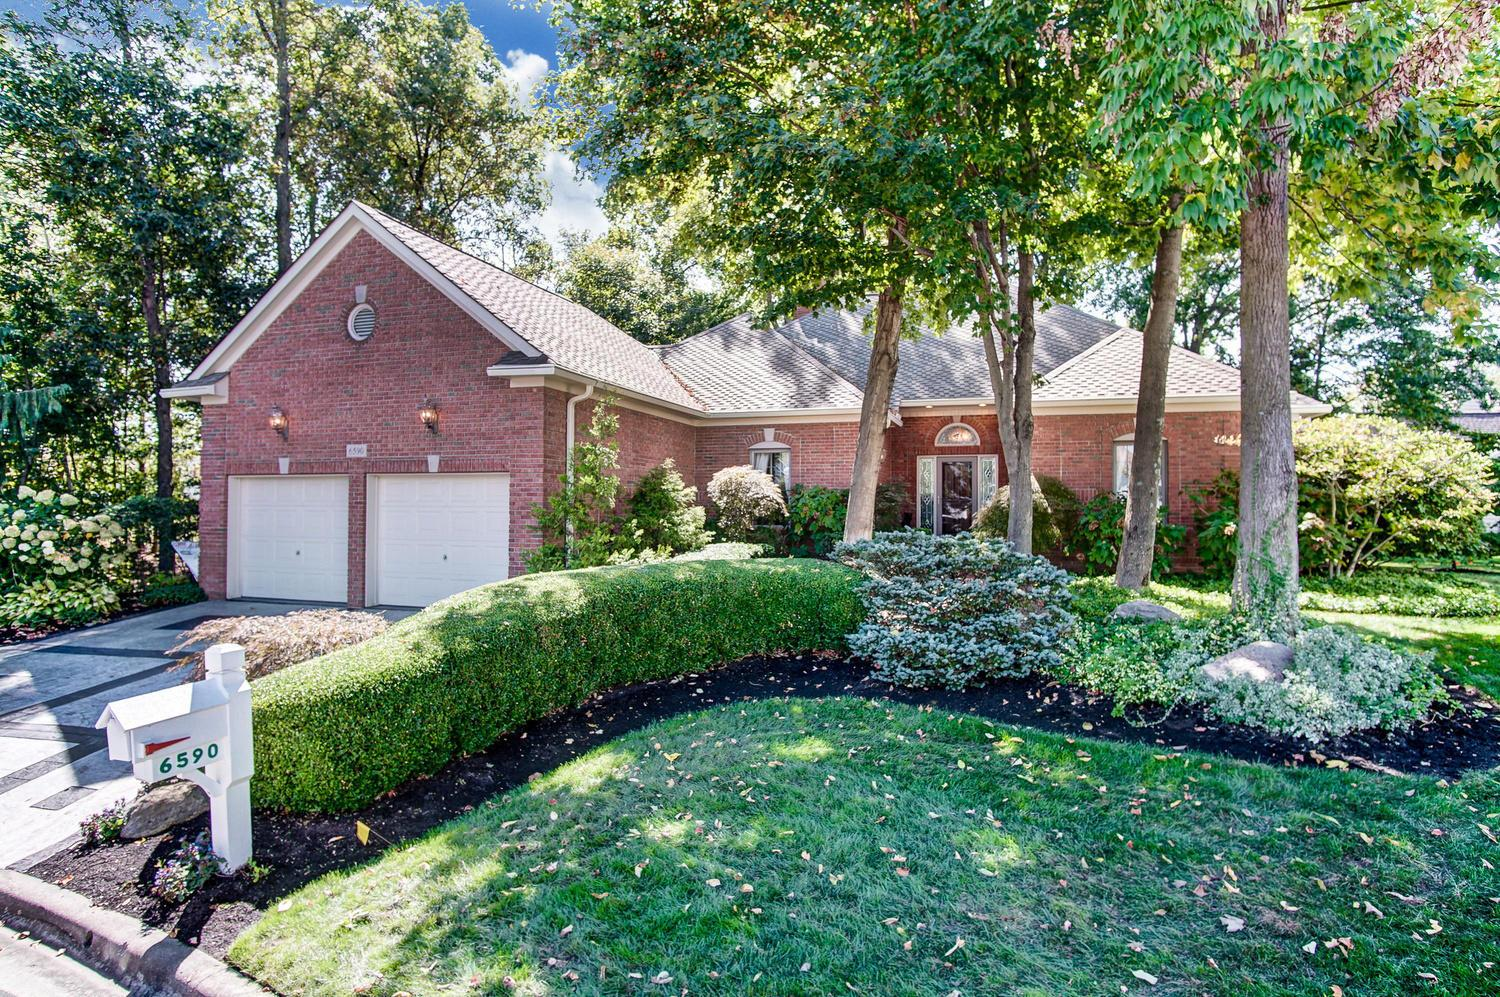 Photo of 6590 Kenwood Place, Westerville, OH 43082